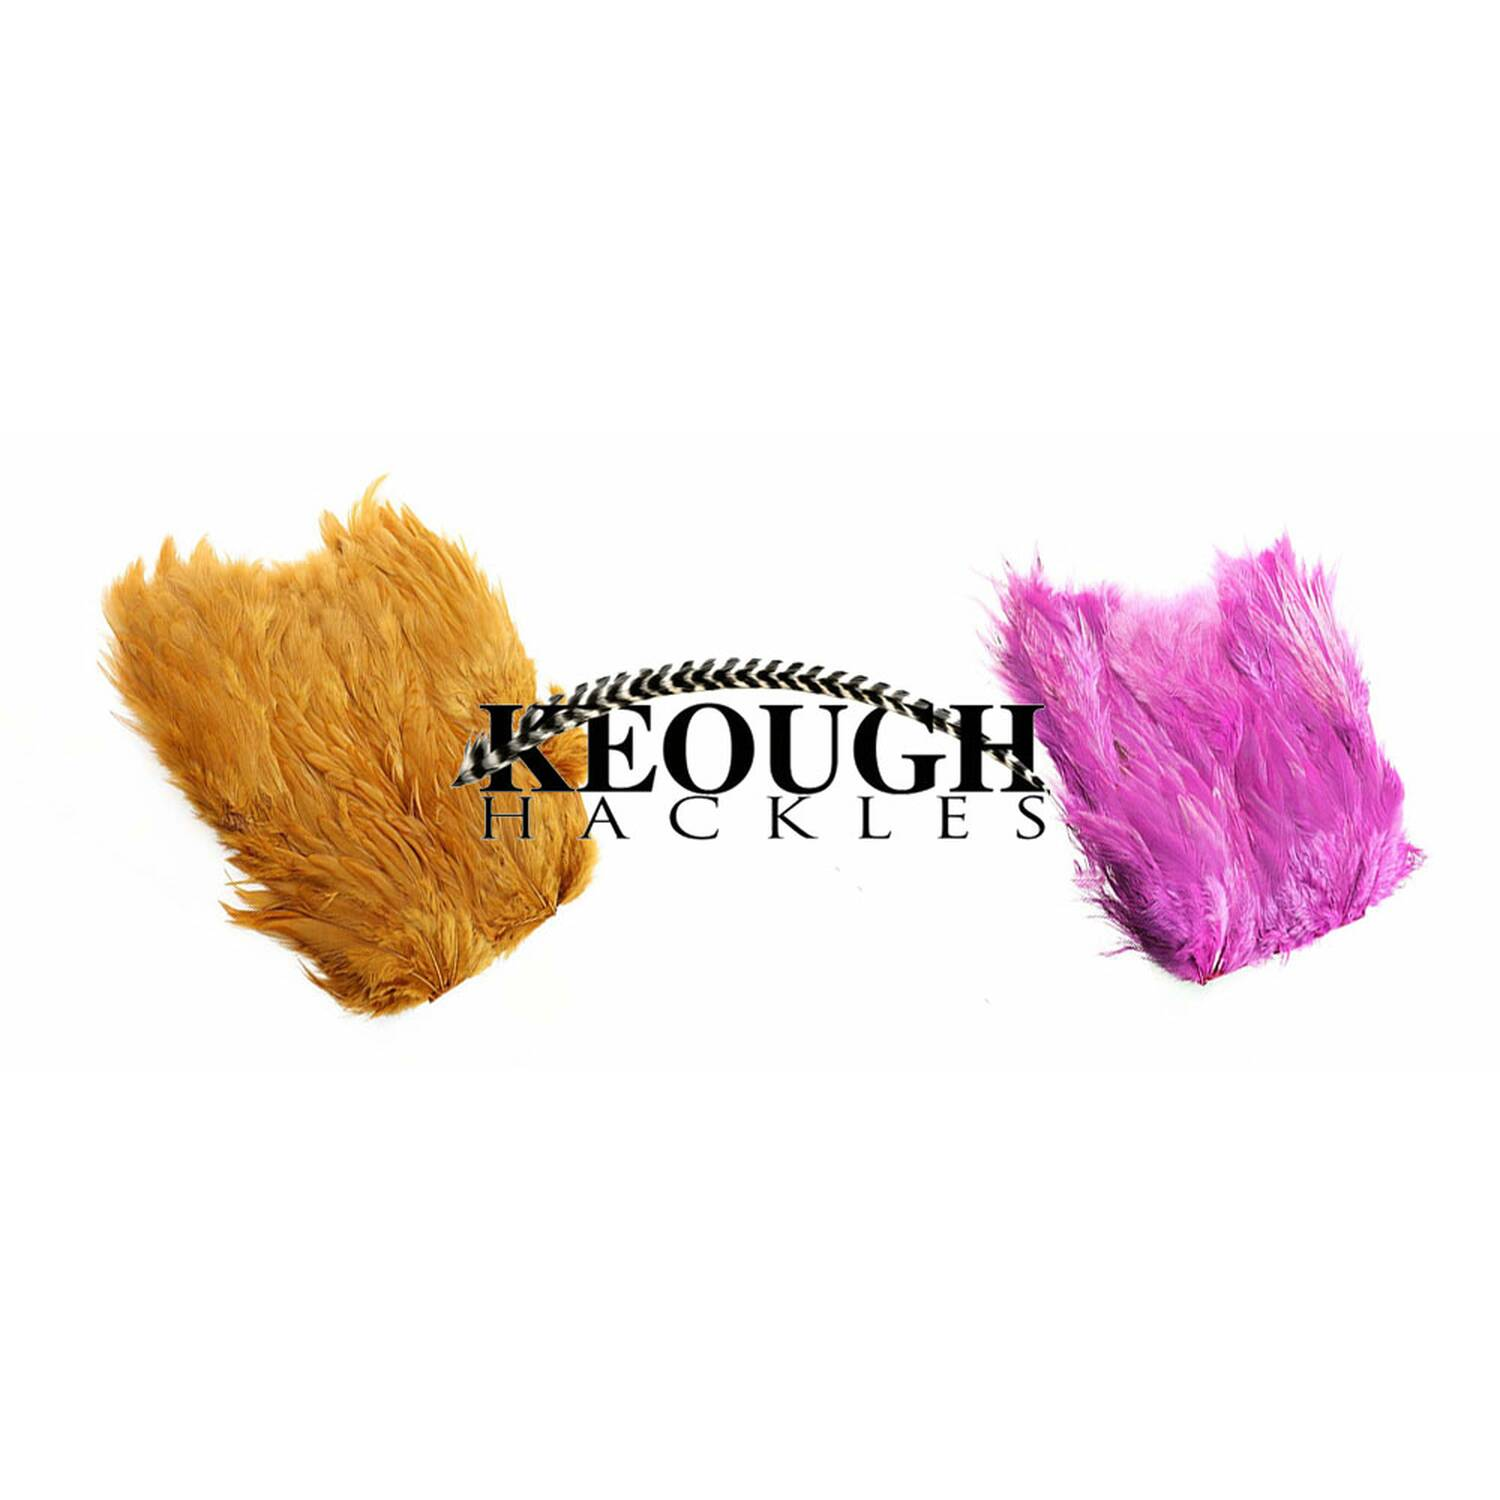 Keough Soft Hackle Patches Capes